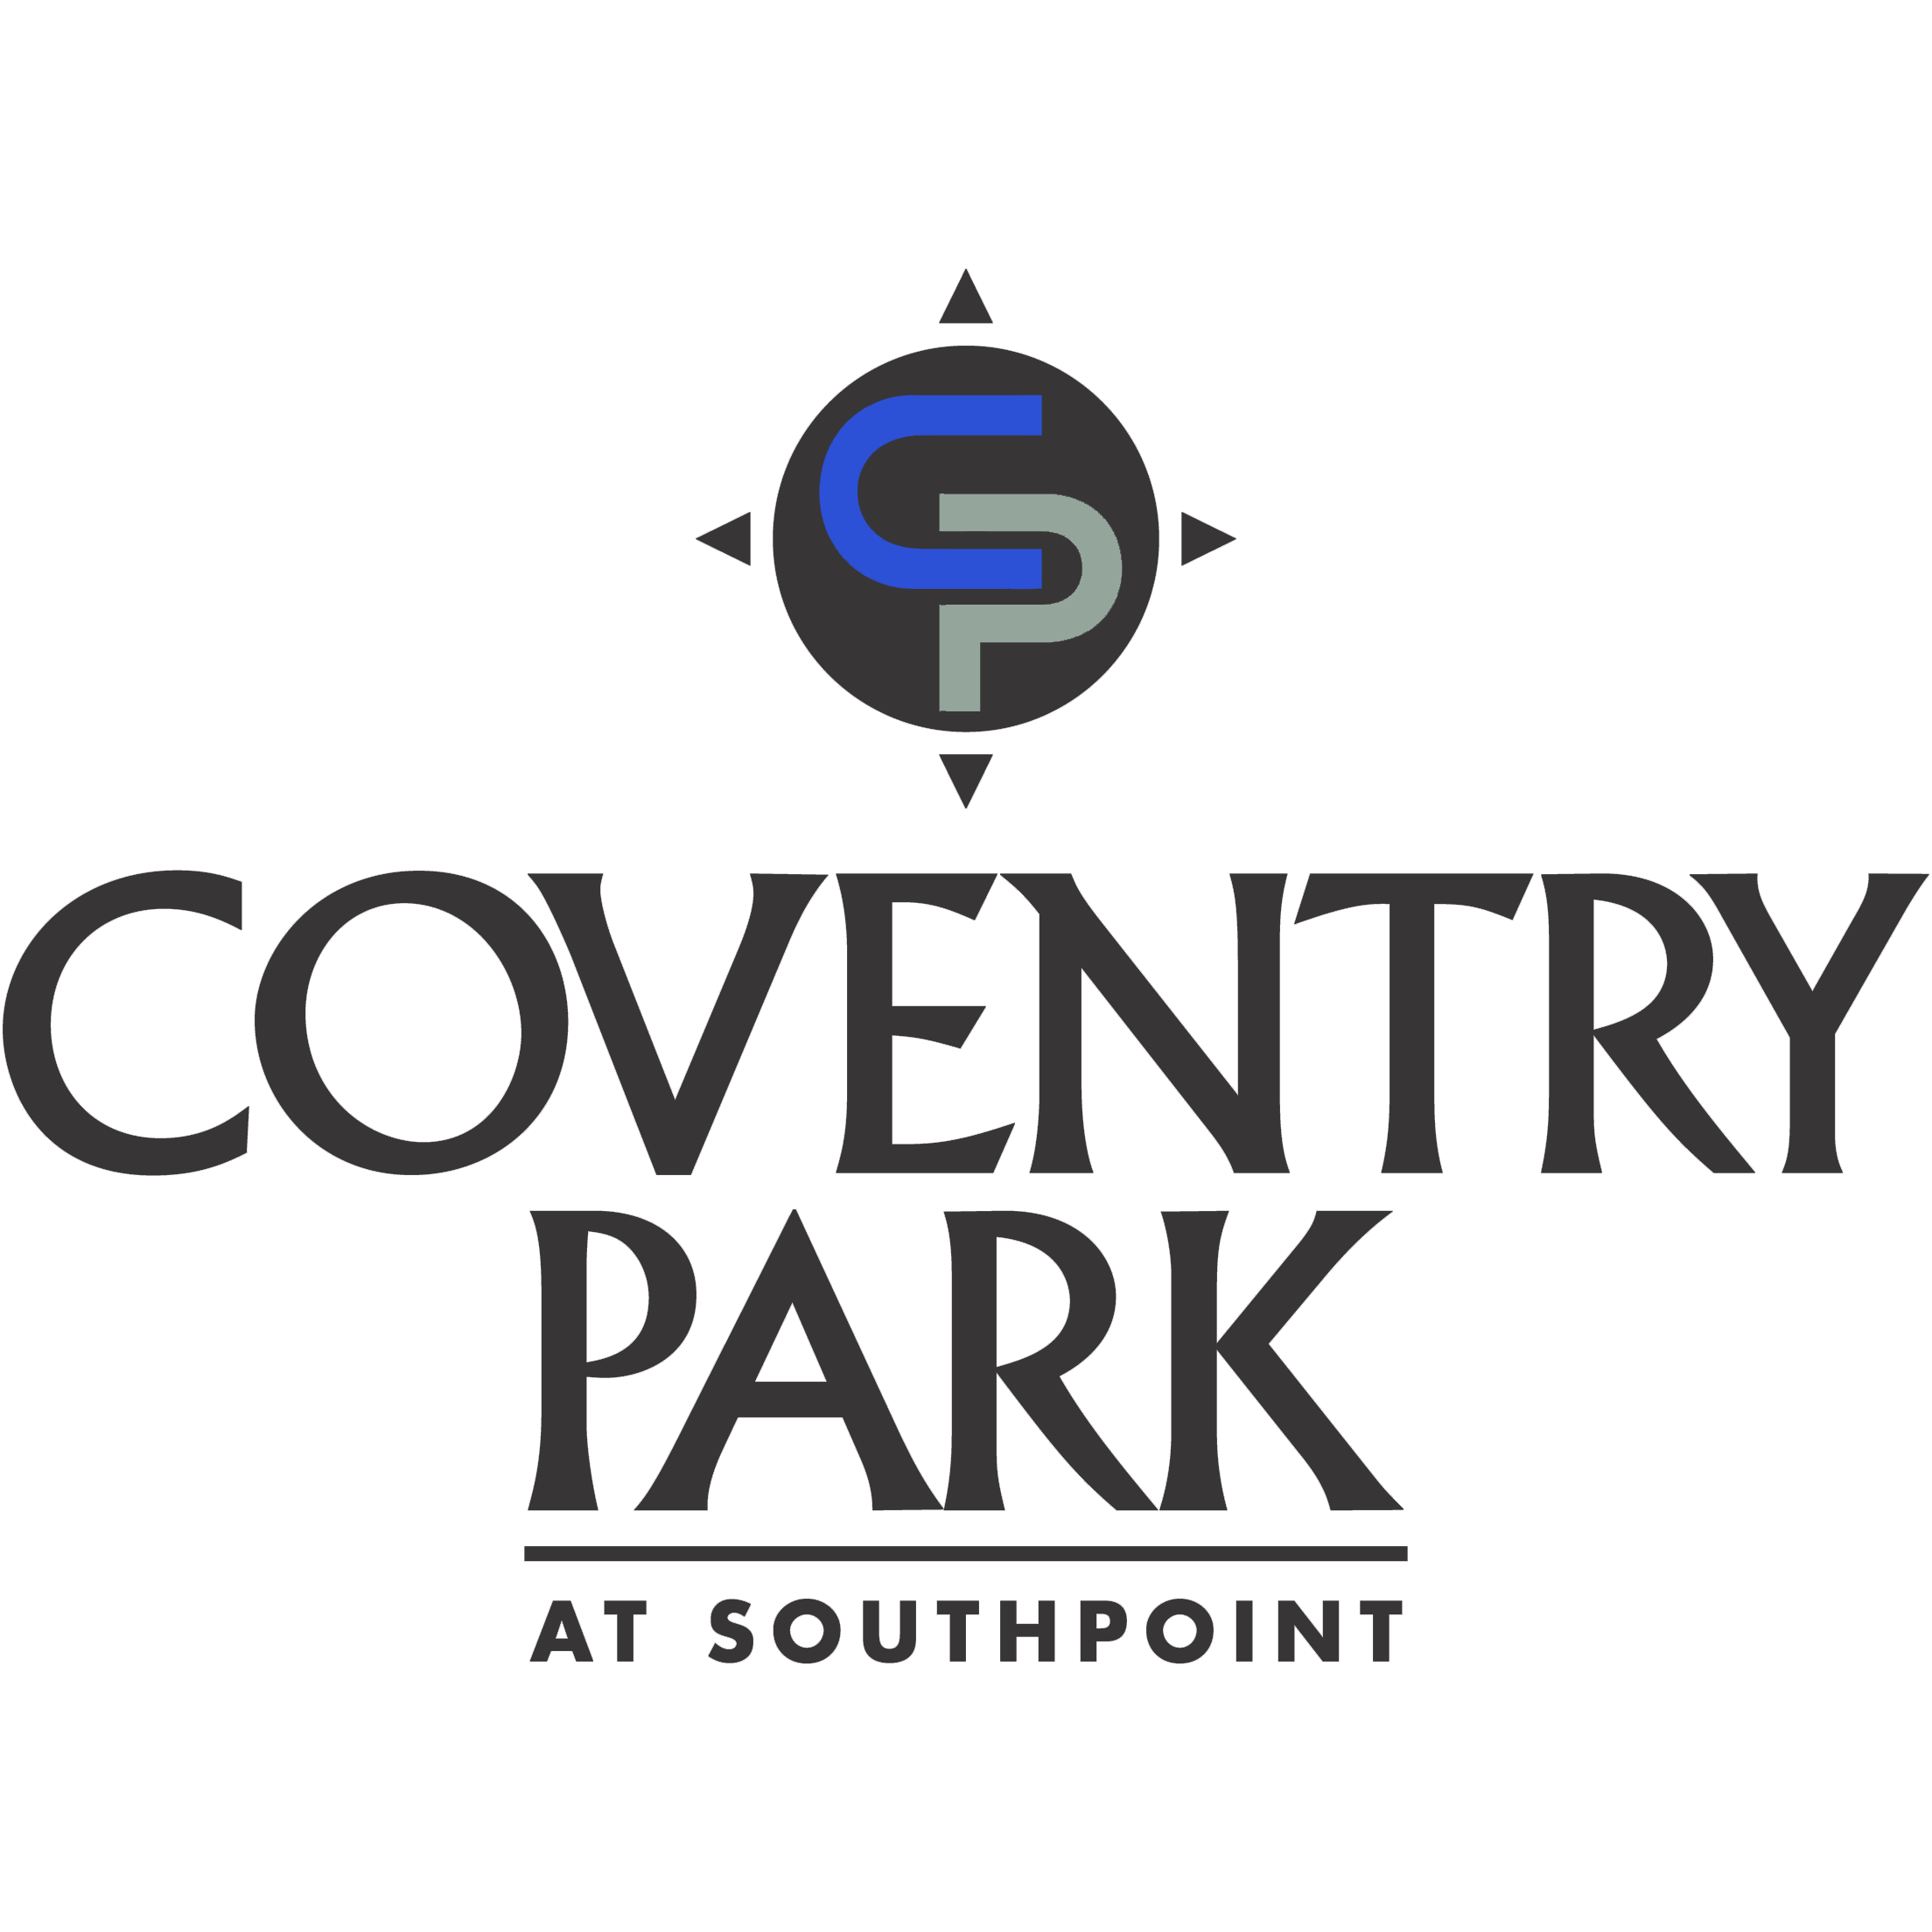 Coventry Park at Southpoint